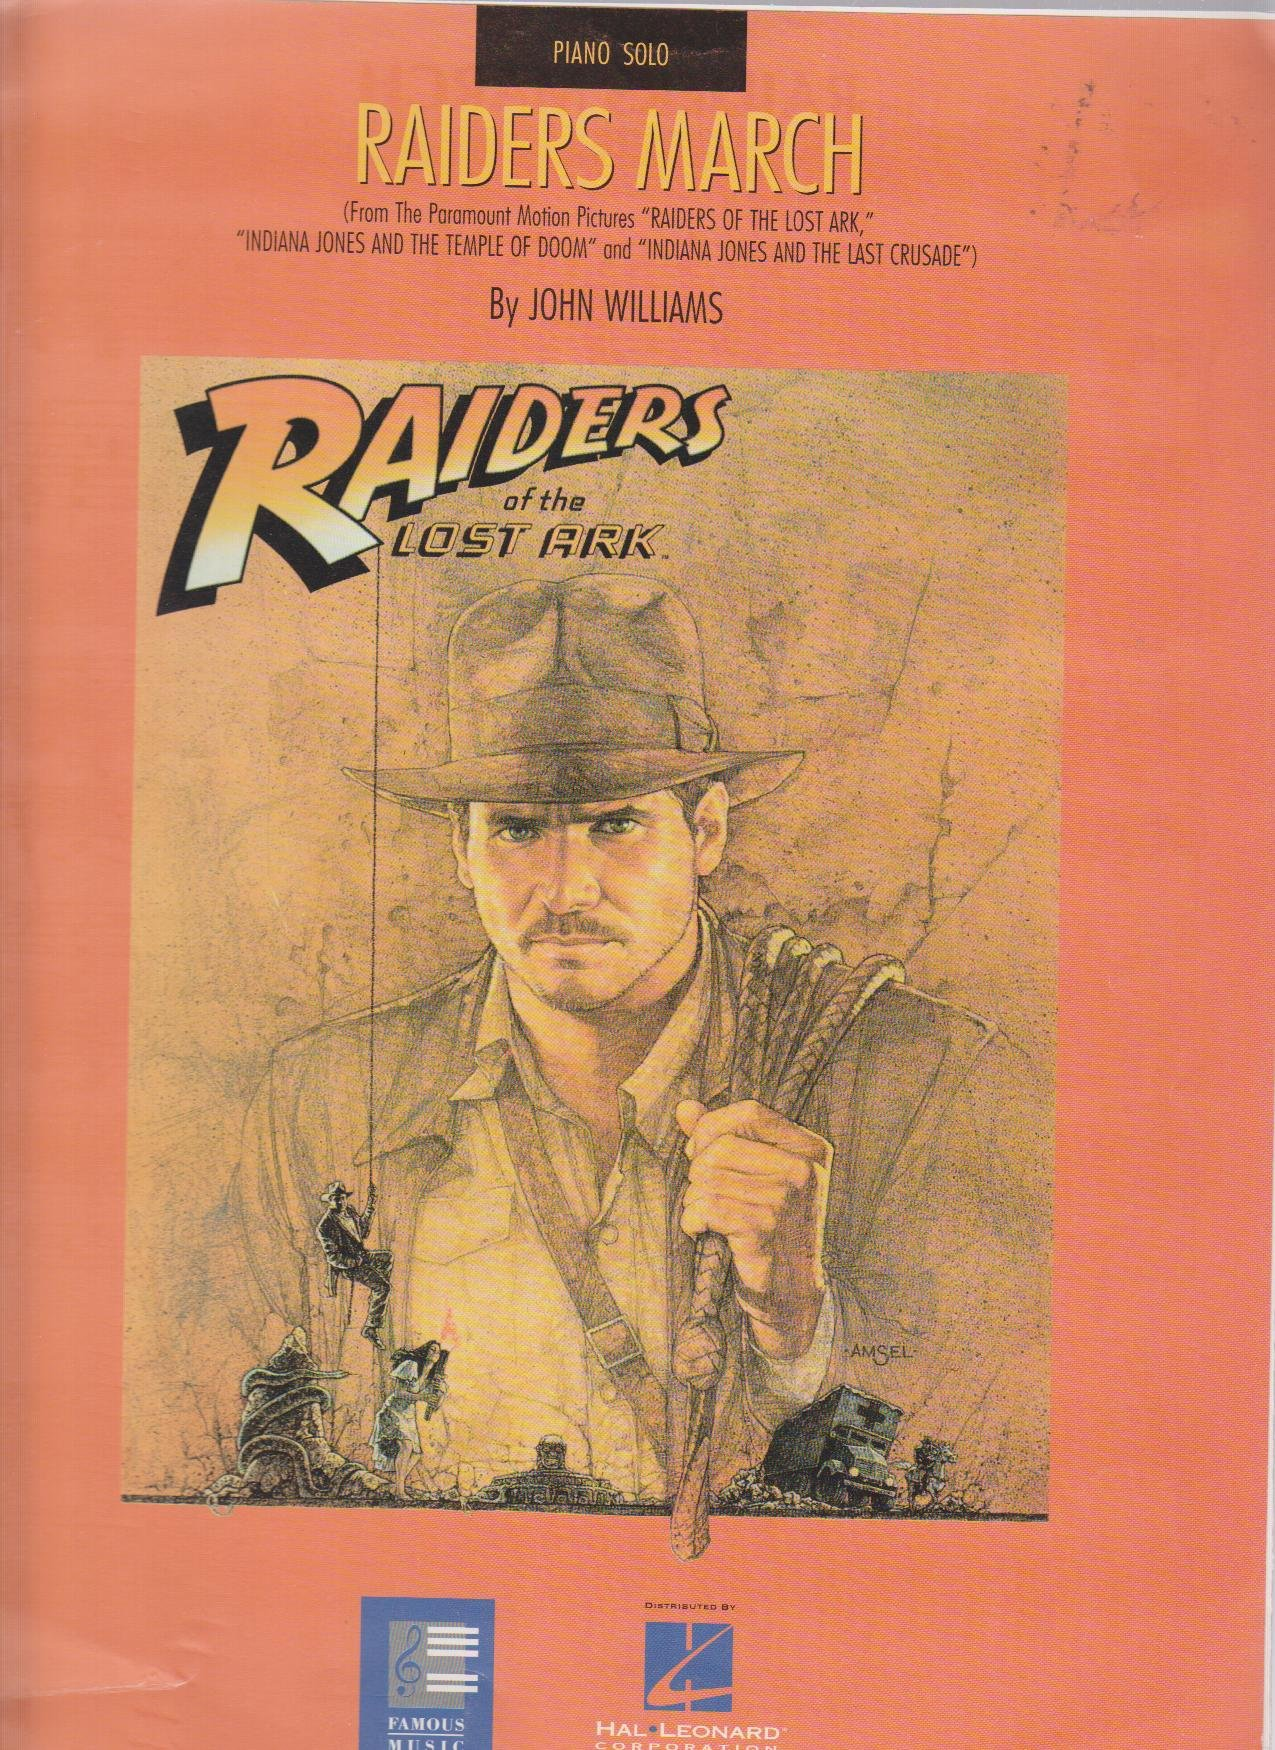 raiders march piano solo from raiders of the lost ark and indiana jones